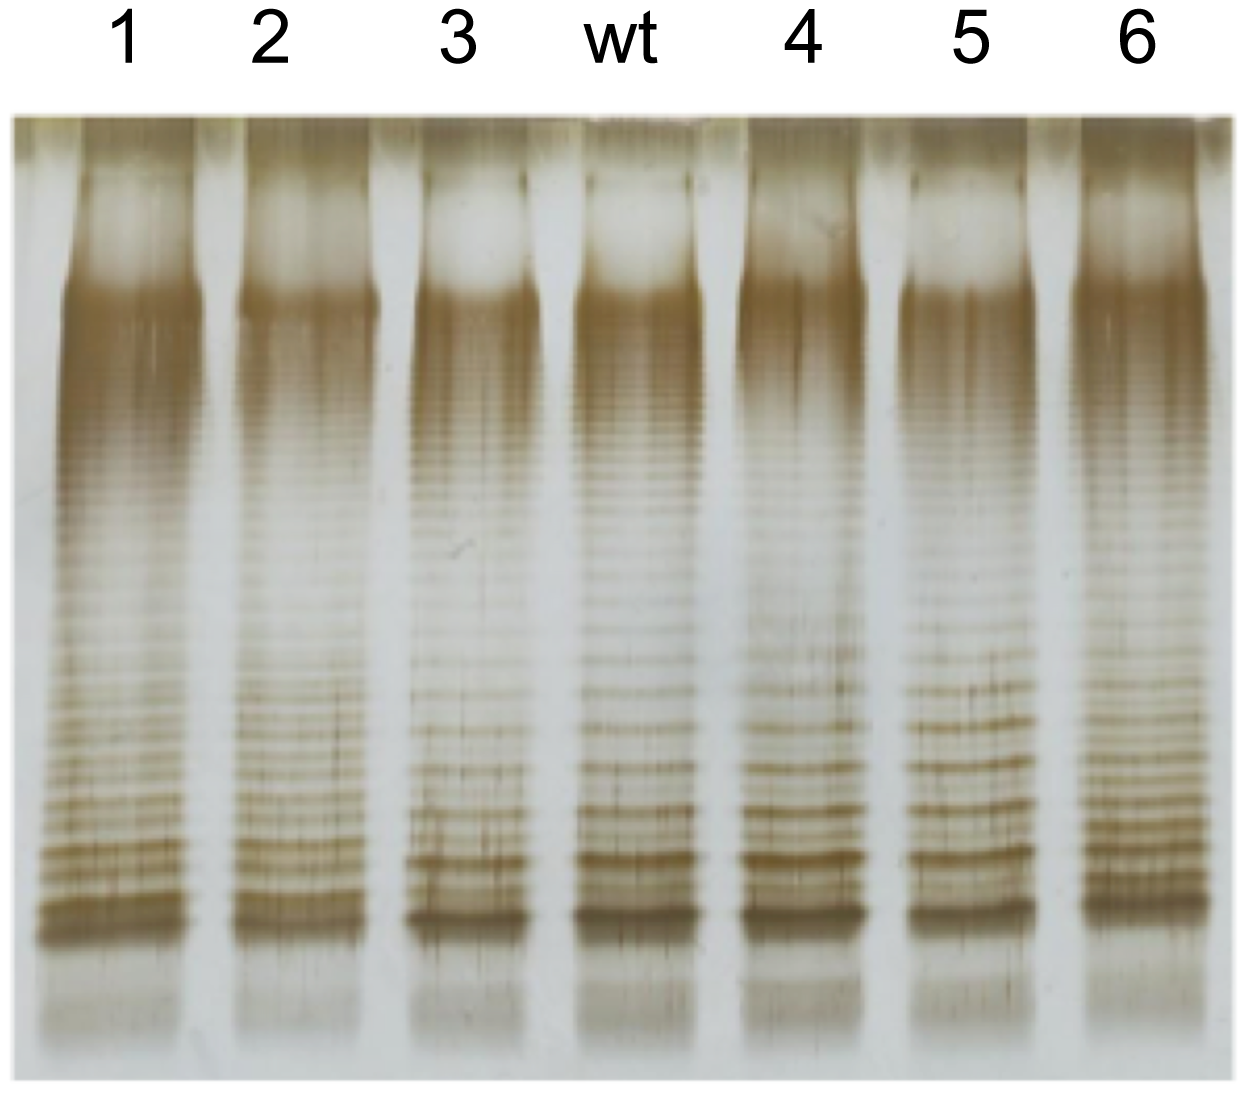 Lipopolysaccharide profiles of bile-resistant derivatives of <i>S. enterica</i> SL1344, as observed by electrophoresis and silver staining.